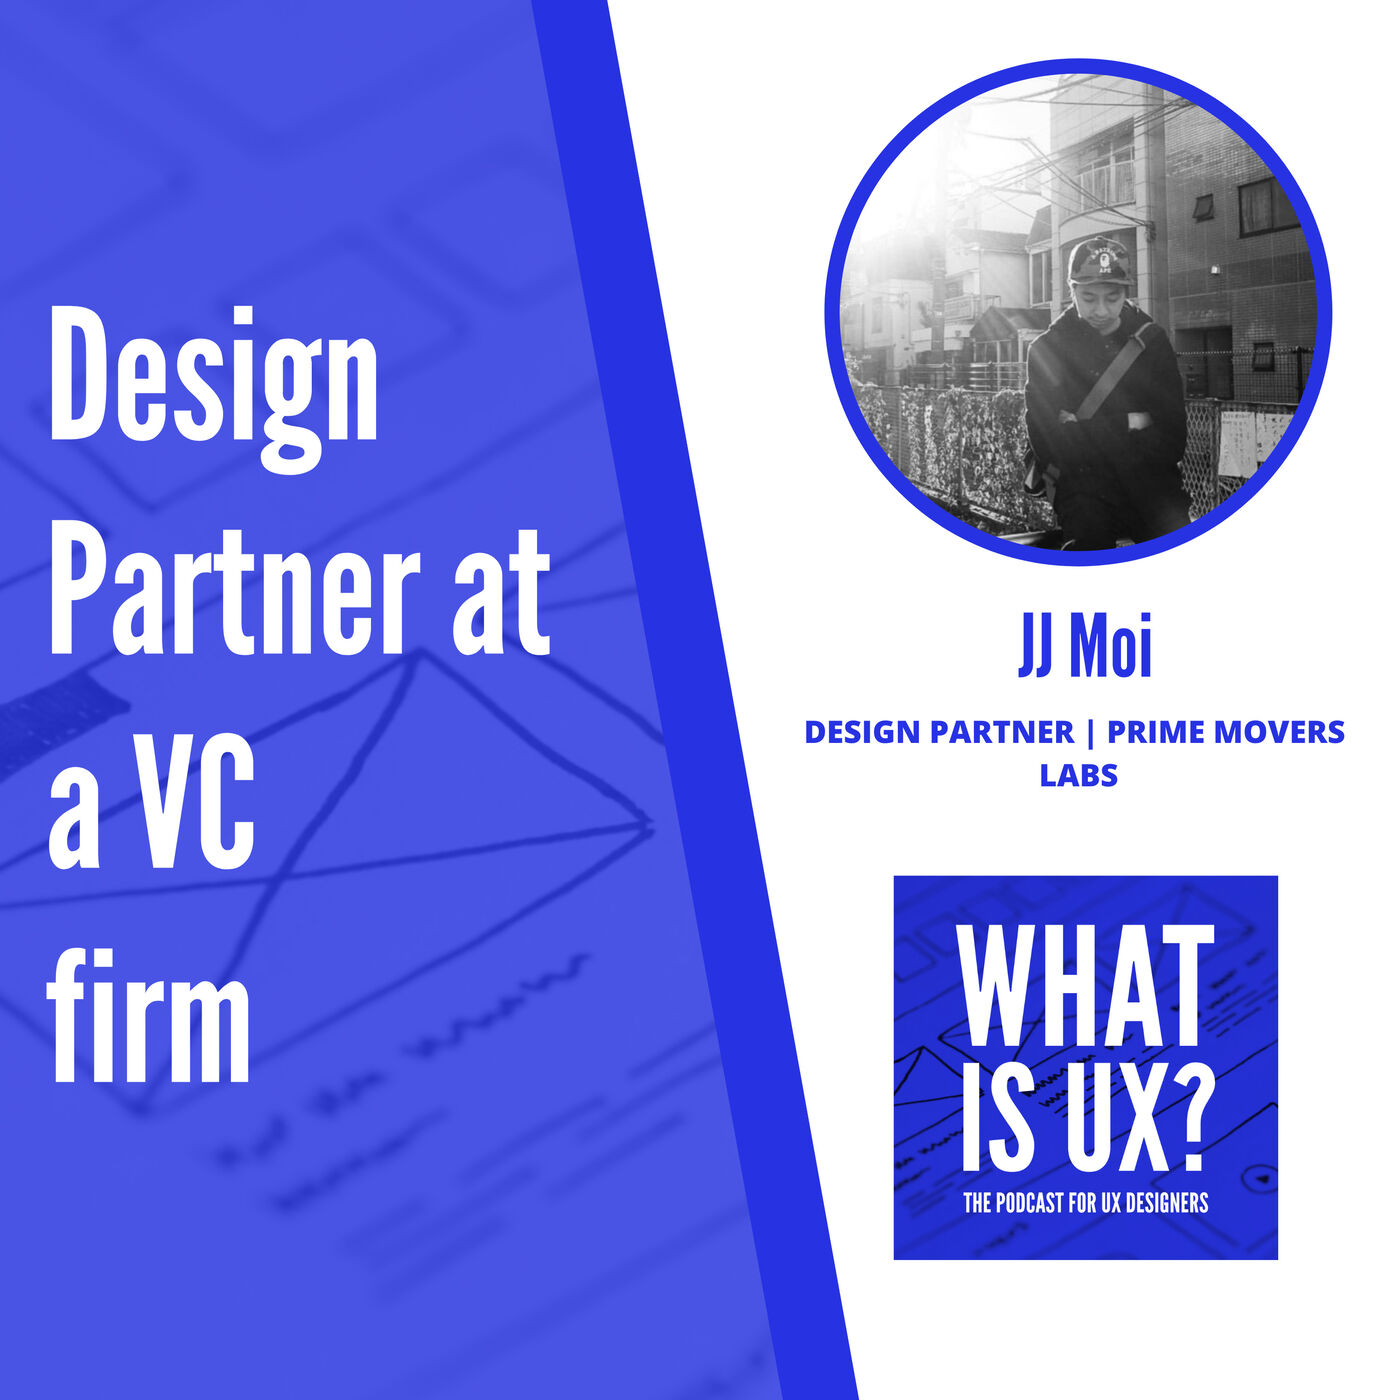 S2E4 Design Partner at a VC firm, an interview with JJ Moi at Prime Movers Lab